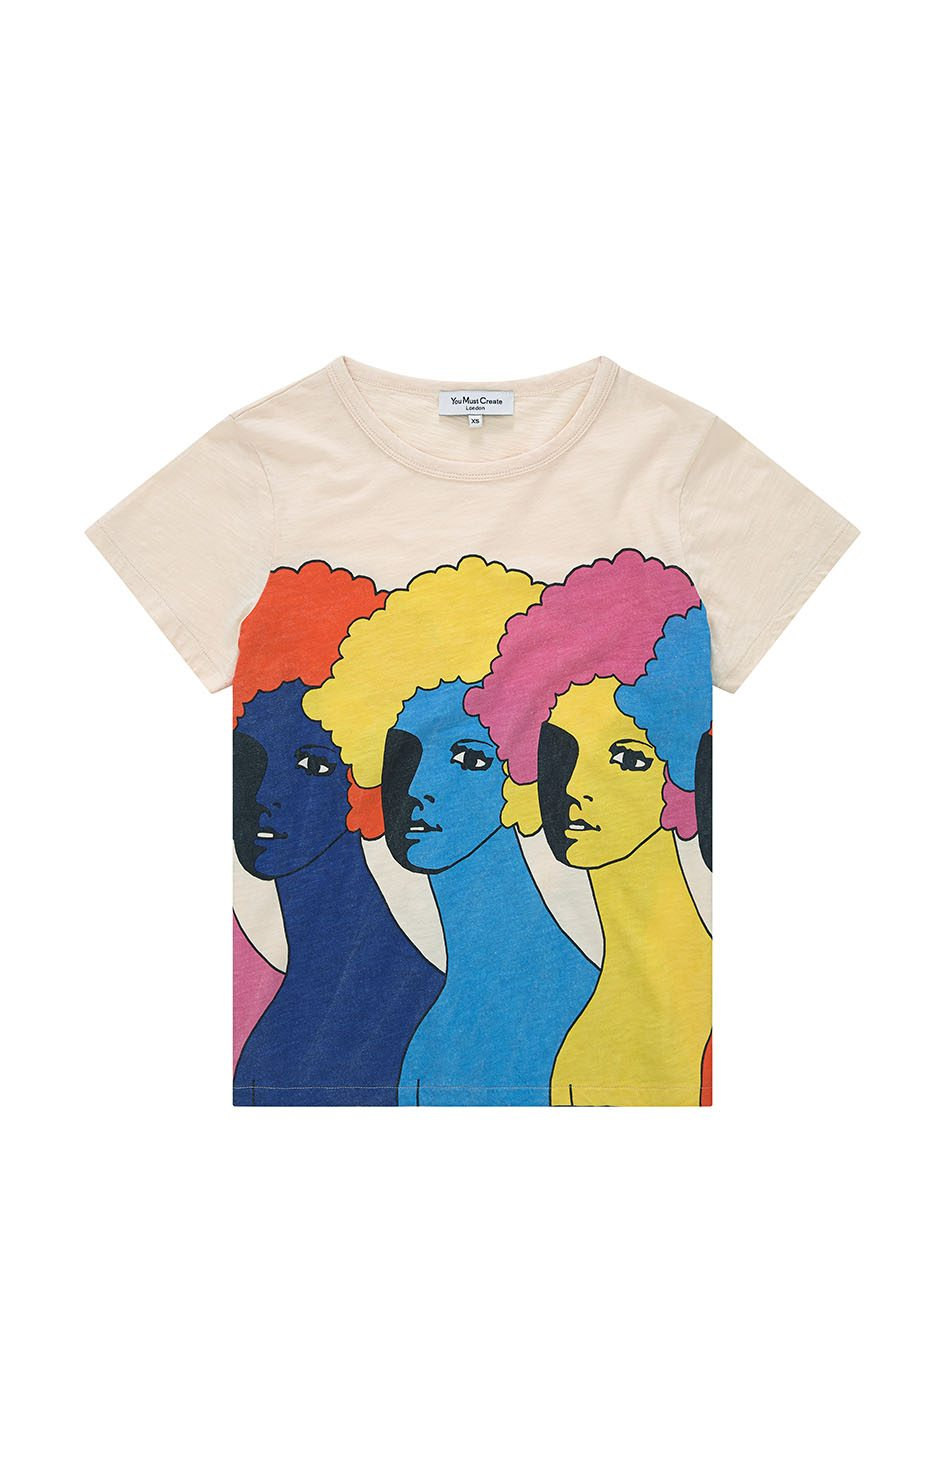 Heads T-Shirt in Ecru